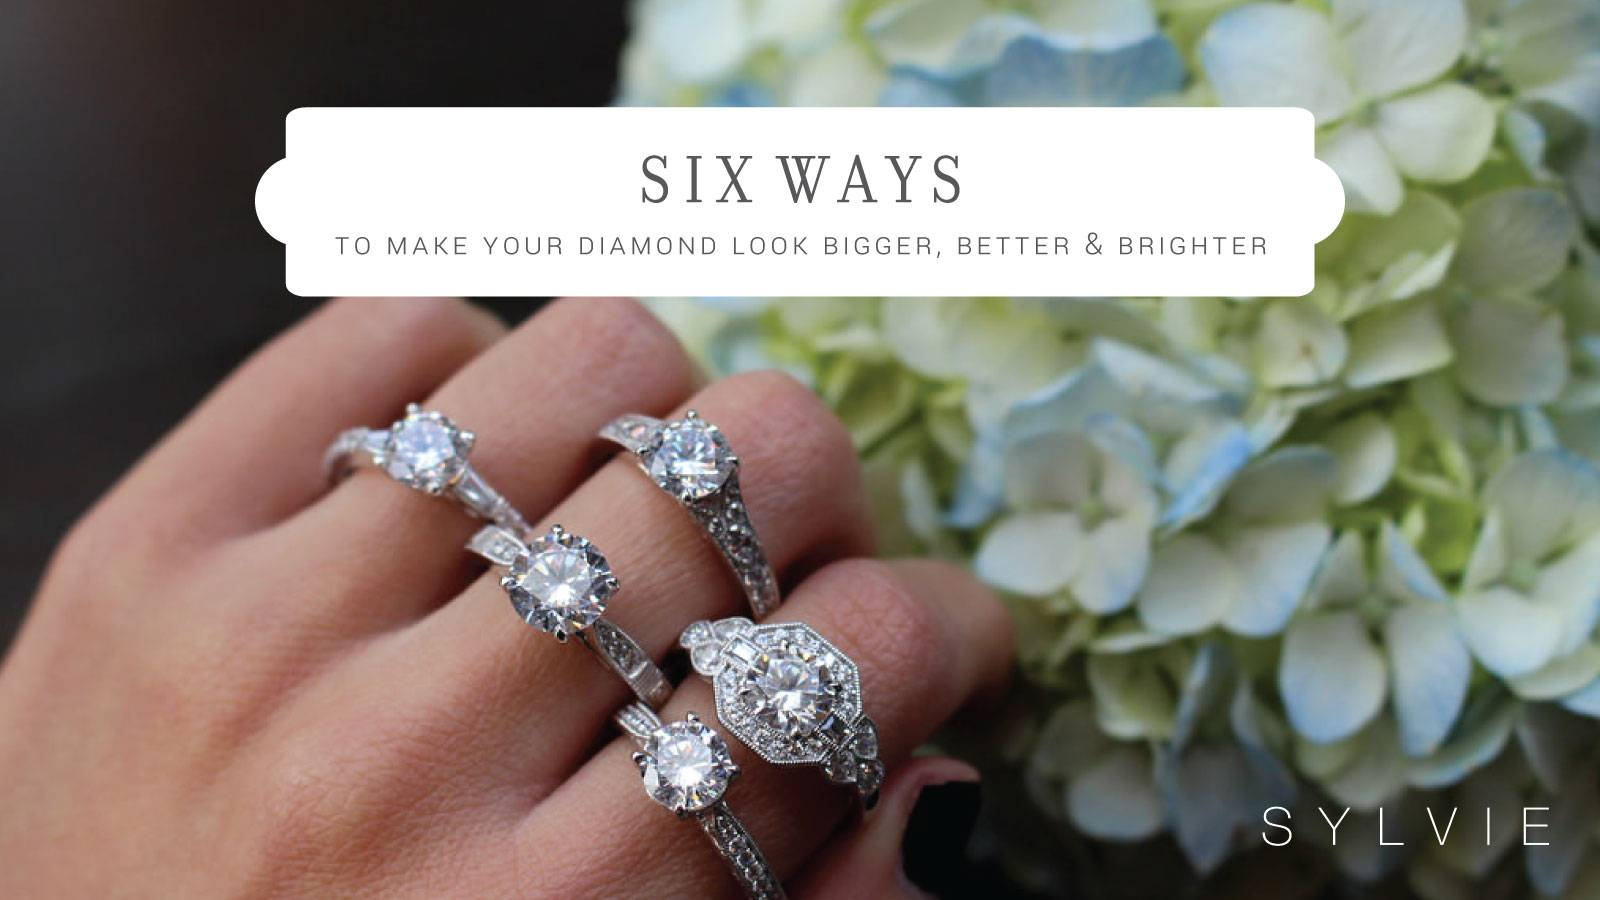 6 Ways to Make Your Diamond Look Bigger Brighter and Better